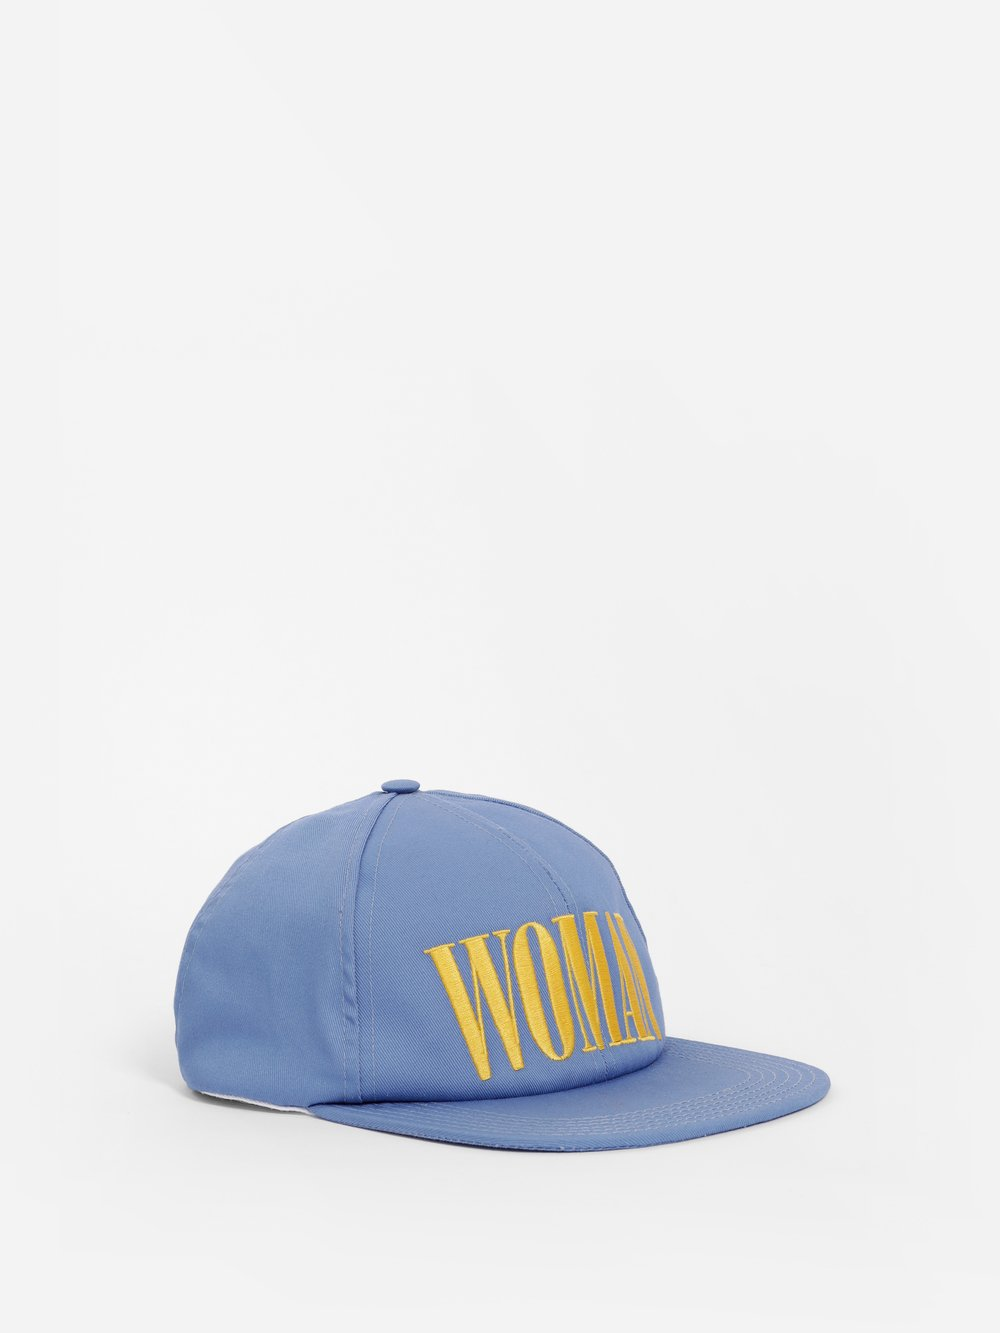 Off White C/O Virgil Abloh Women'S Light Blue Martha'S Vineyard Cap